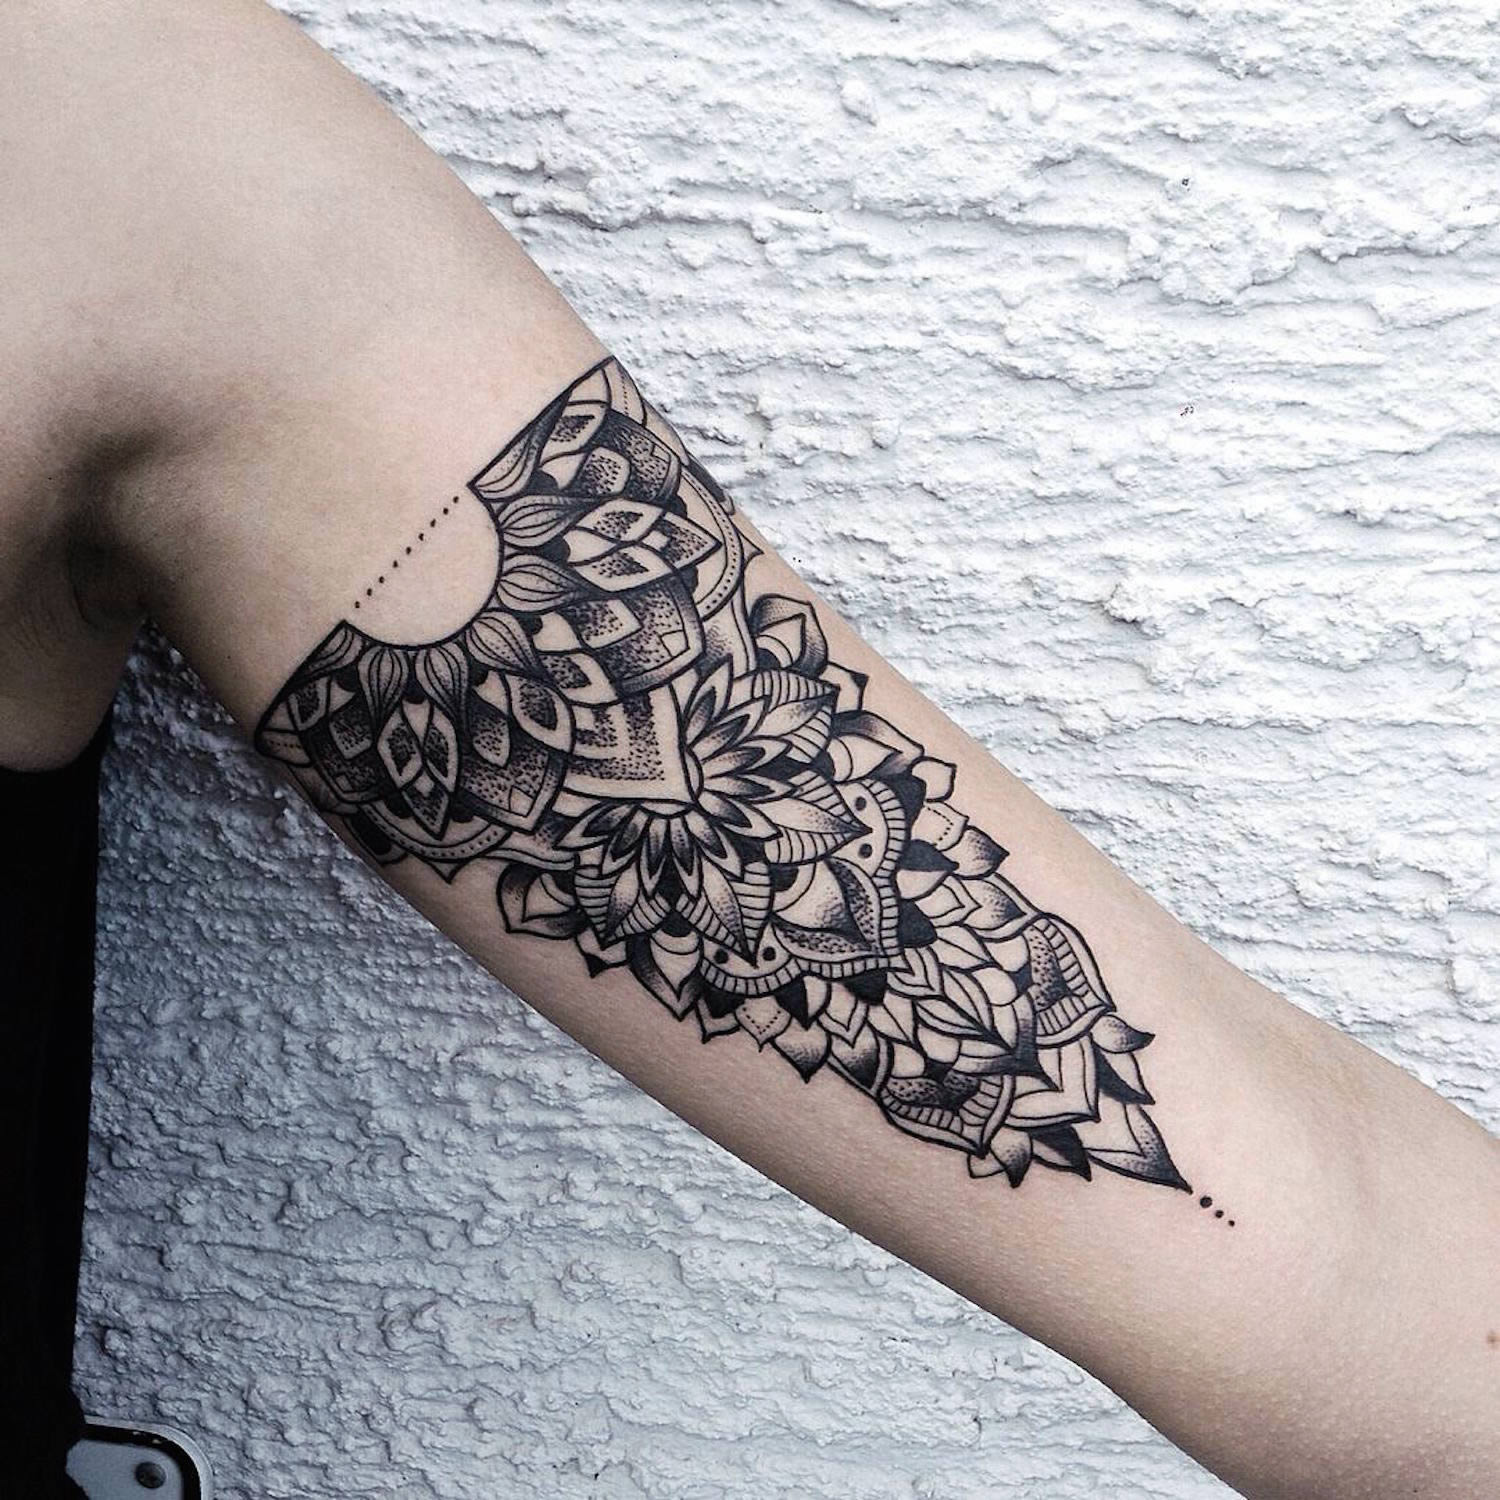 Ornamental tattoo on inside arm